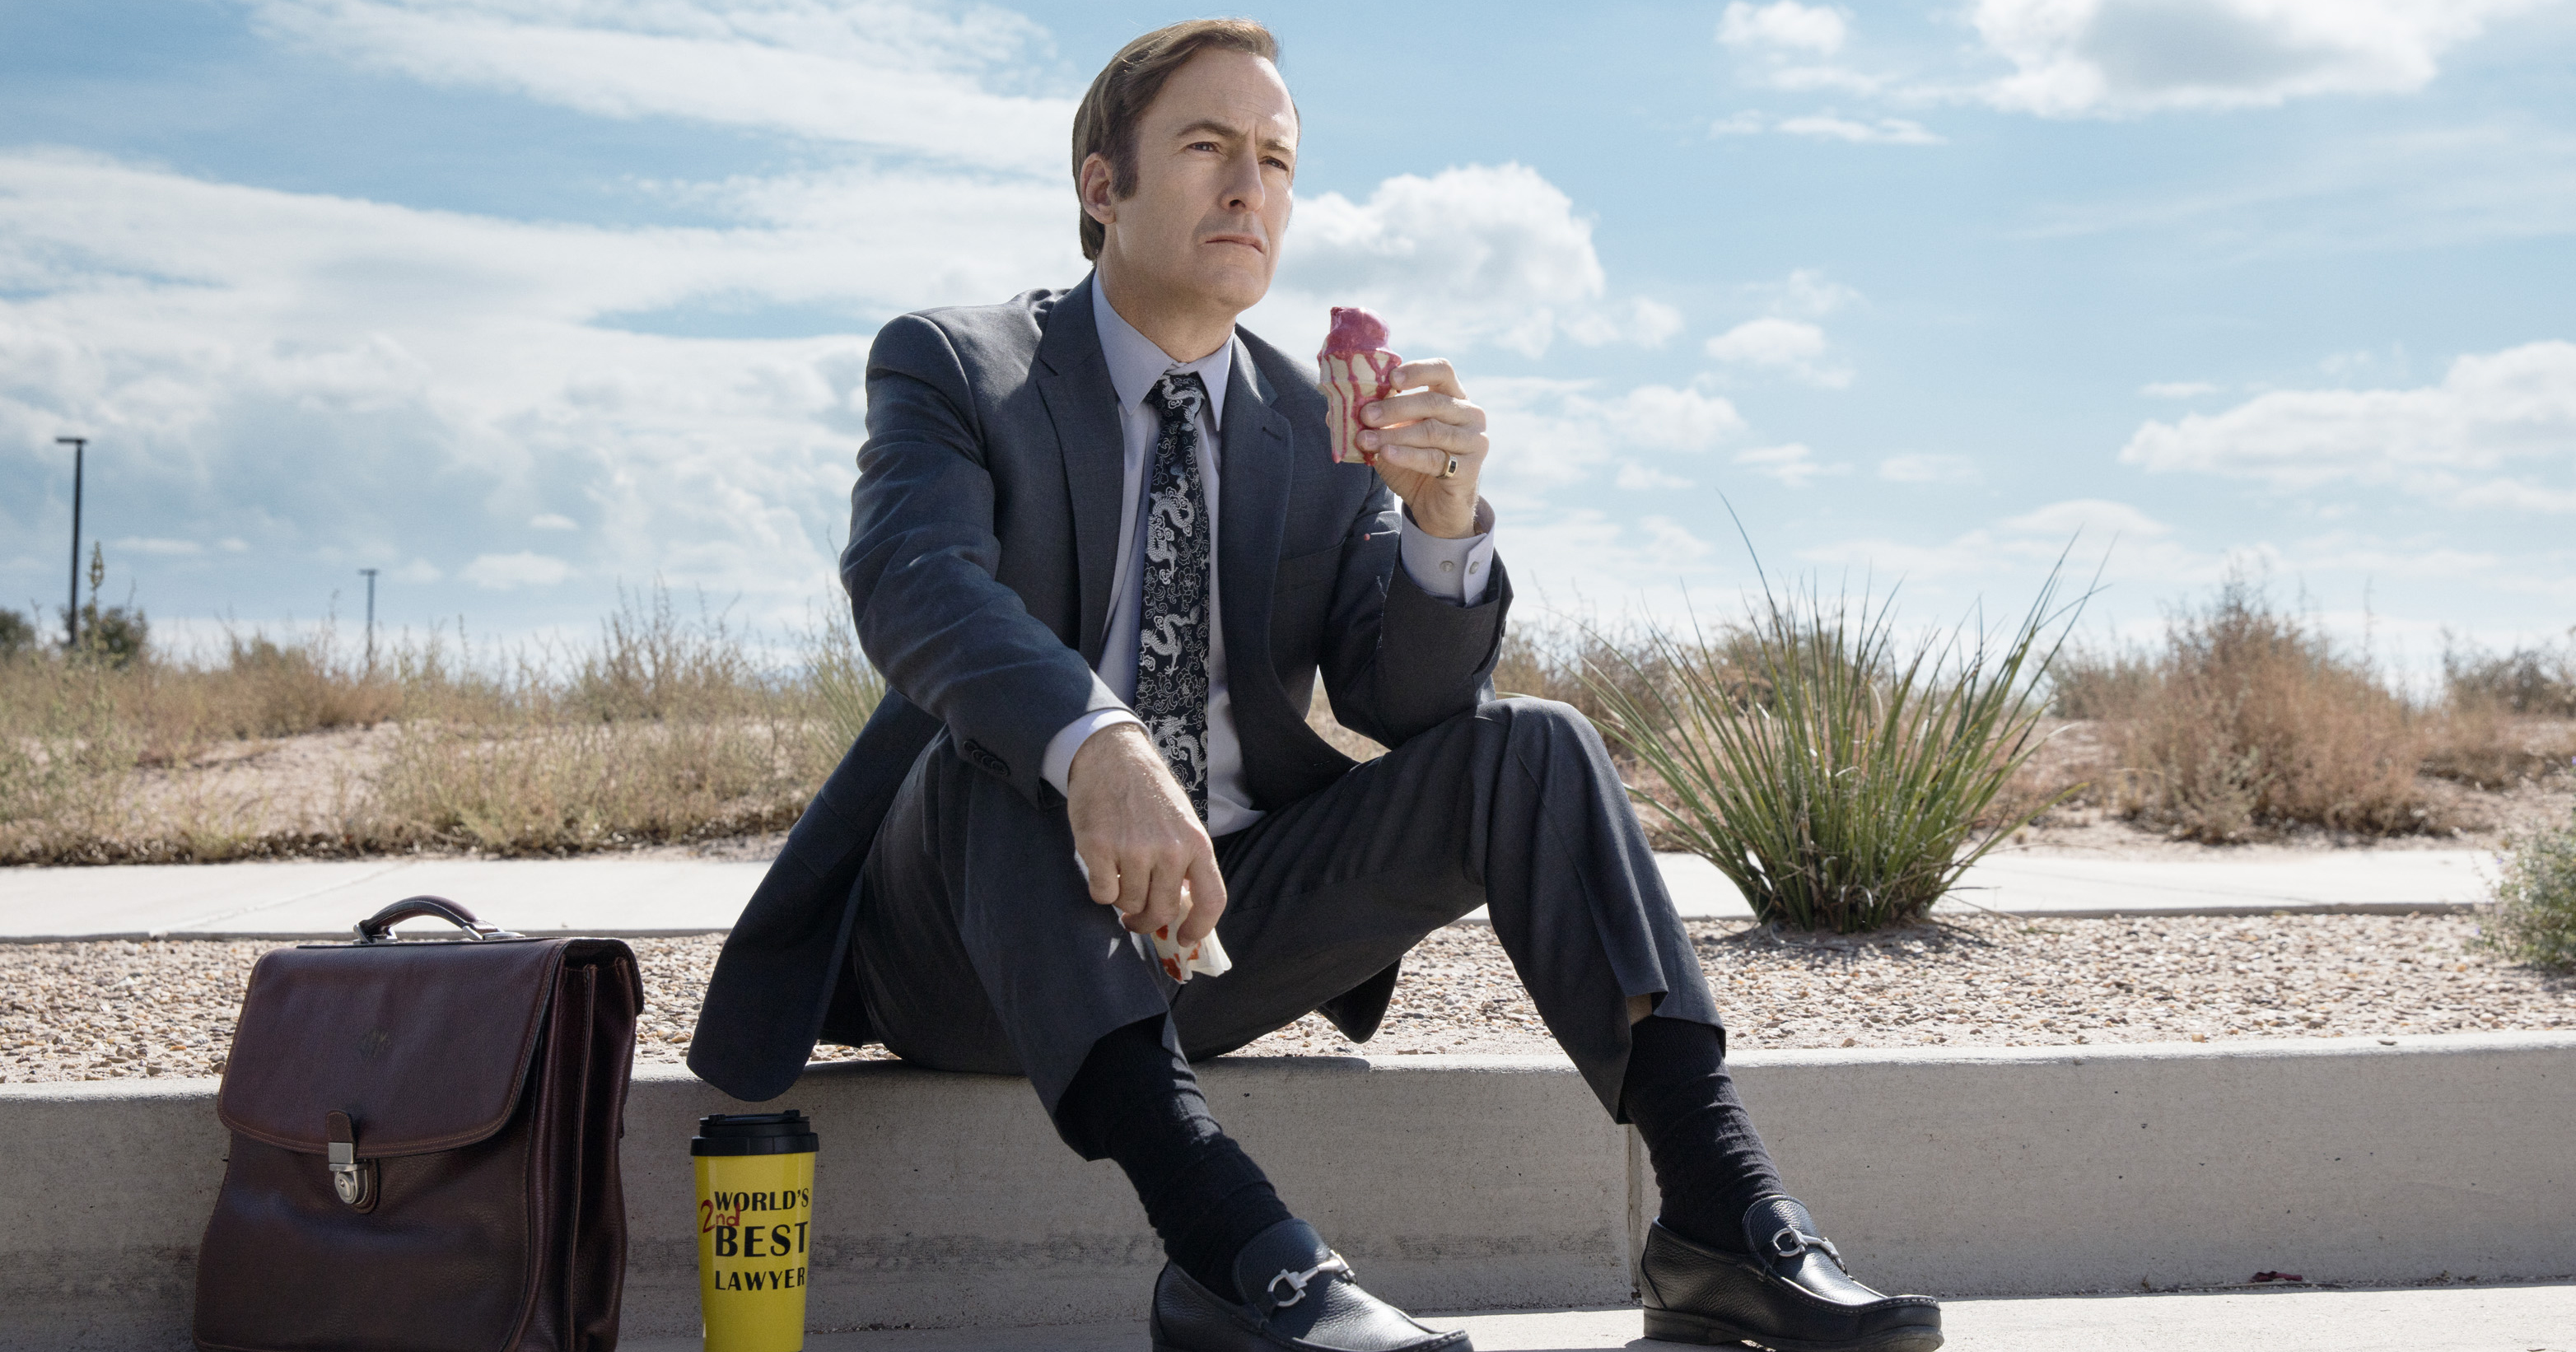 Bob Odenkirk, as Jimmy McGill, in Better Call Saul.